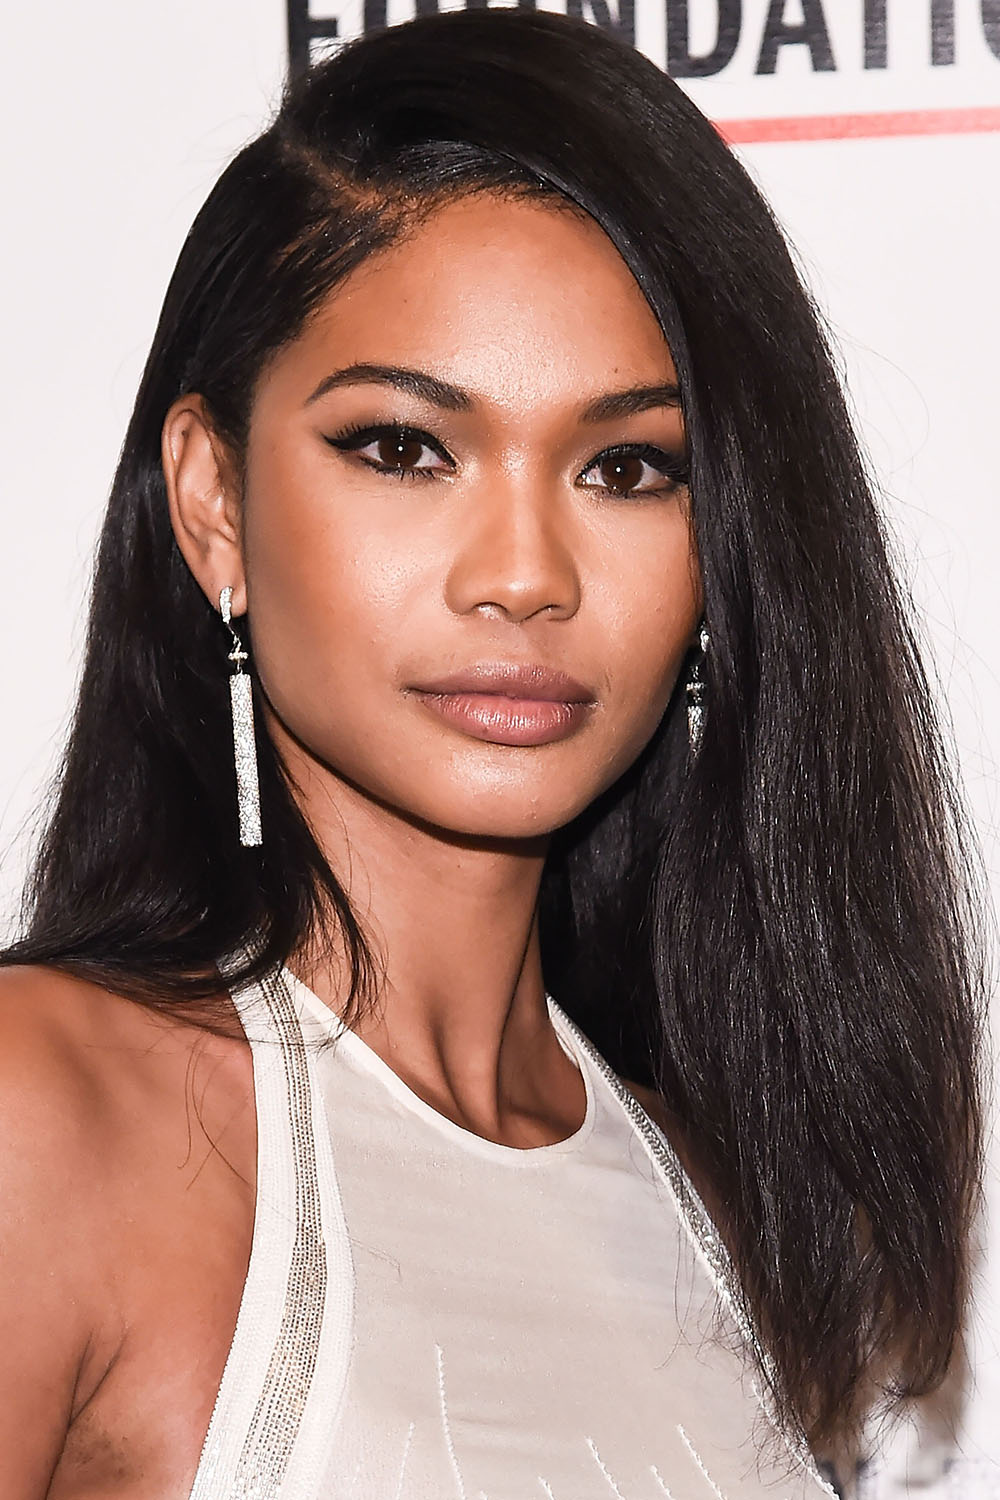 Outstanding 33 Best Medium Hairstyles Celebrities With Shoulder Length Haircuts Short Hairstyles For Black Women Fulllsitofus